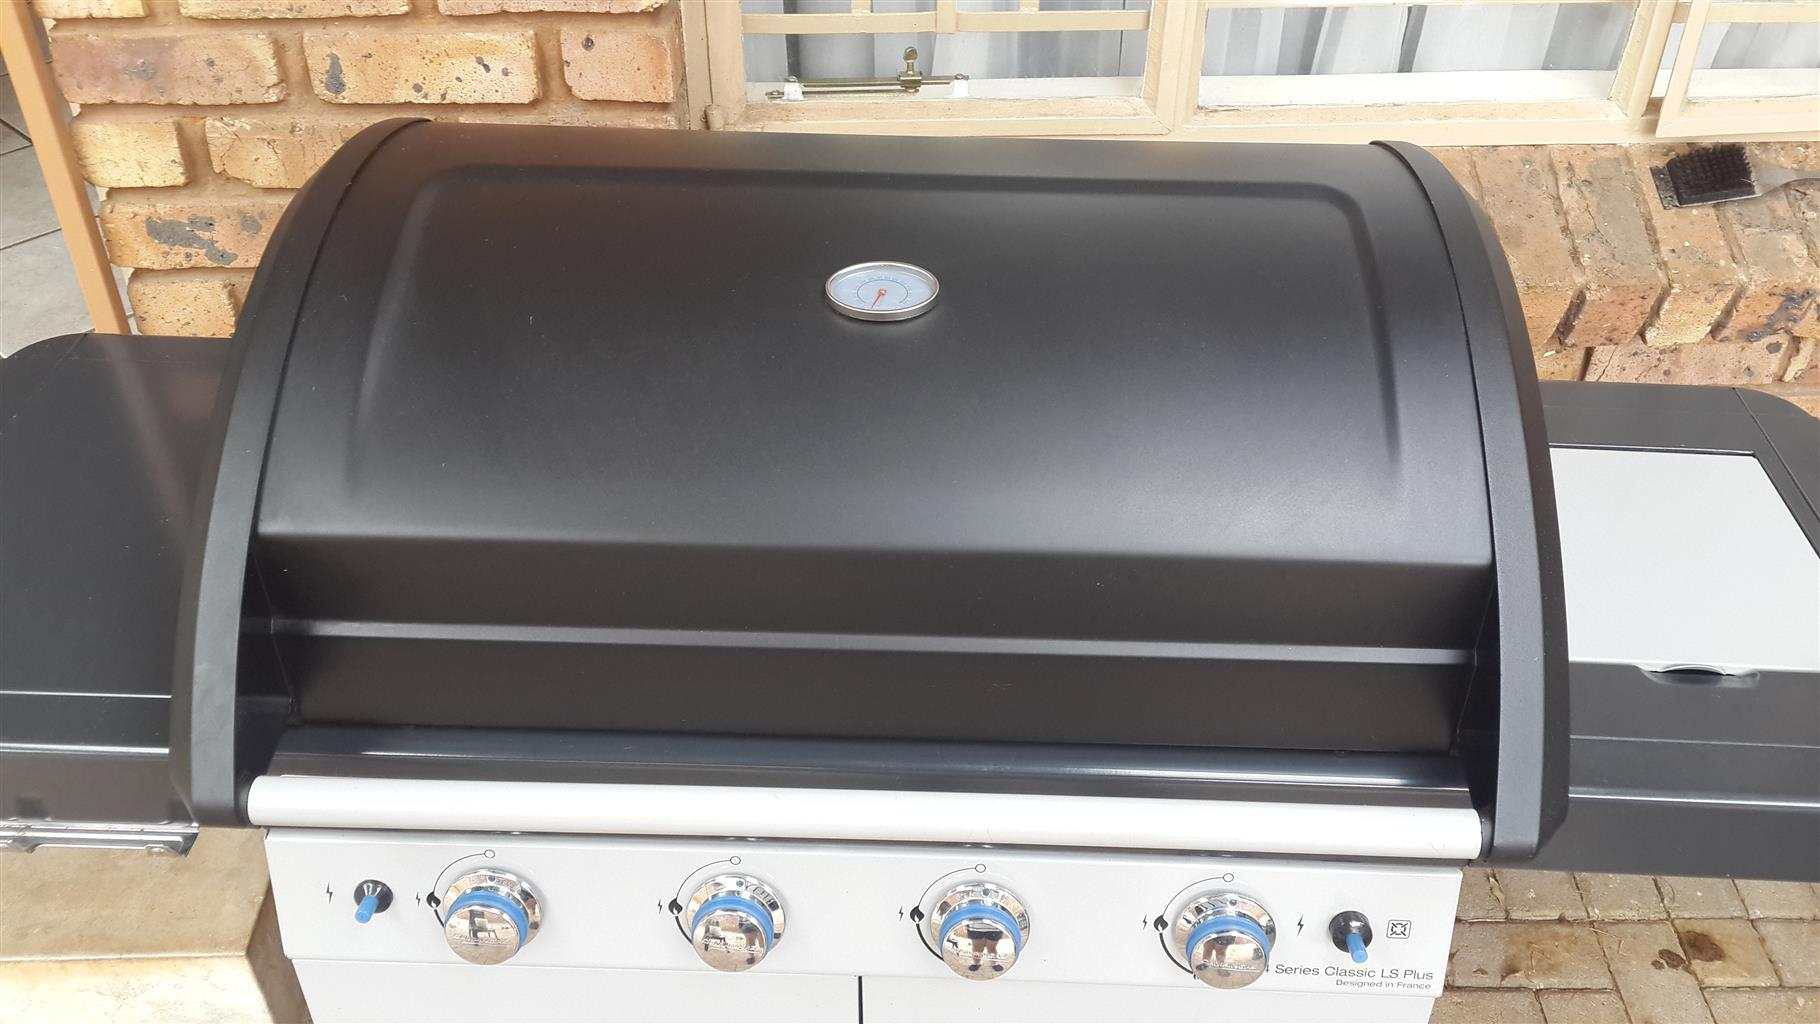 Campingaz 4 Series Classic LS Gas Braai for sale